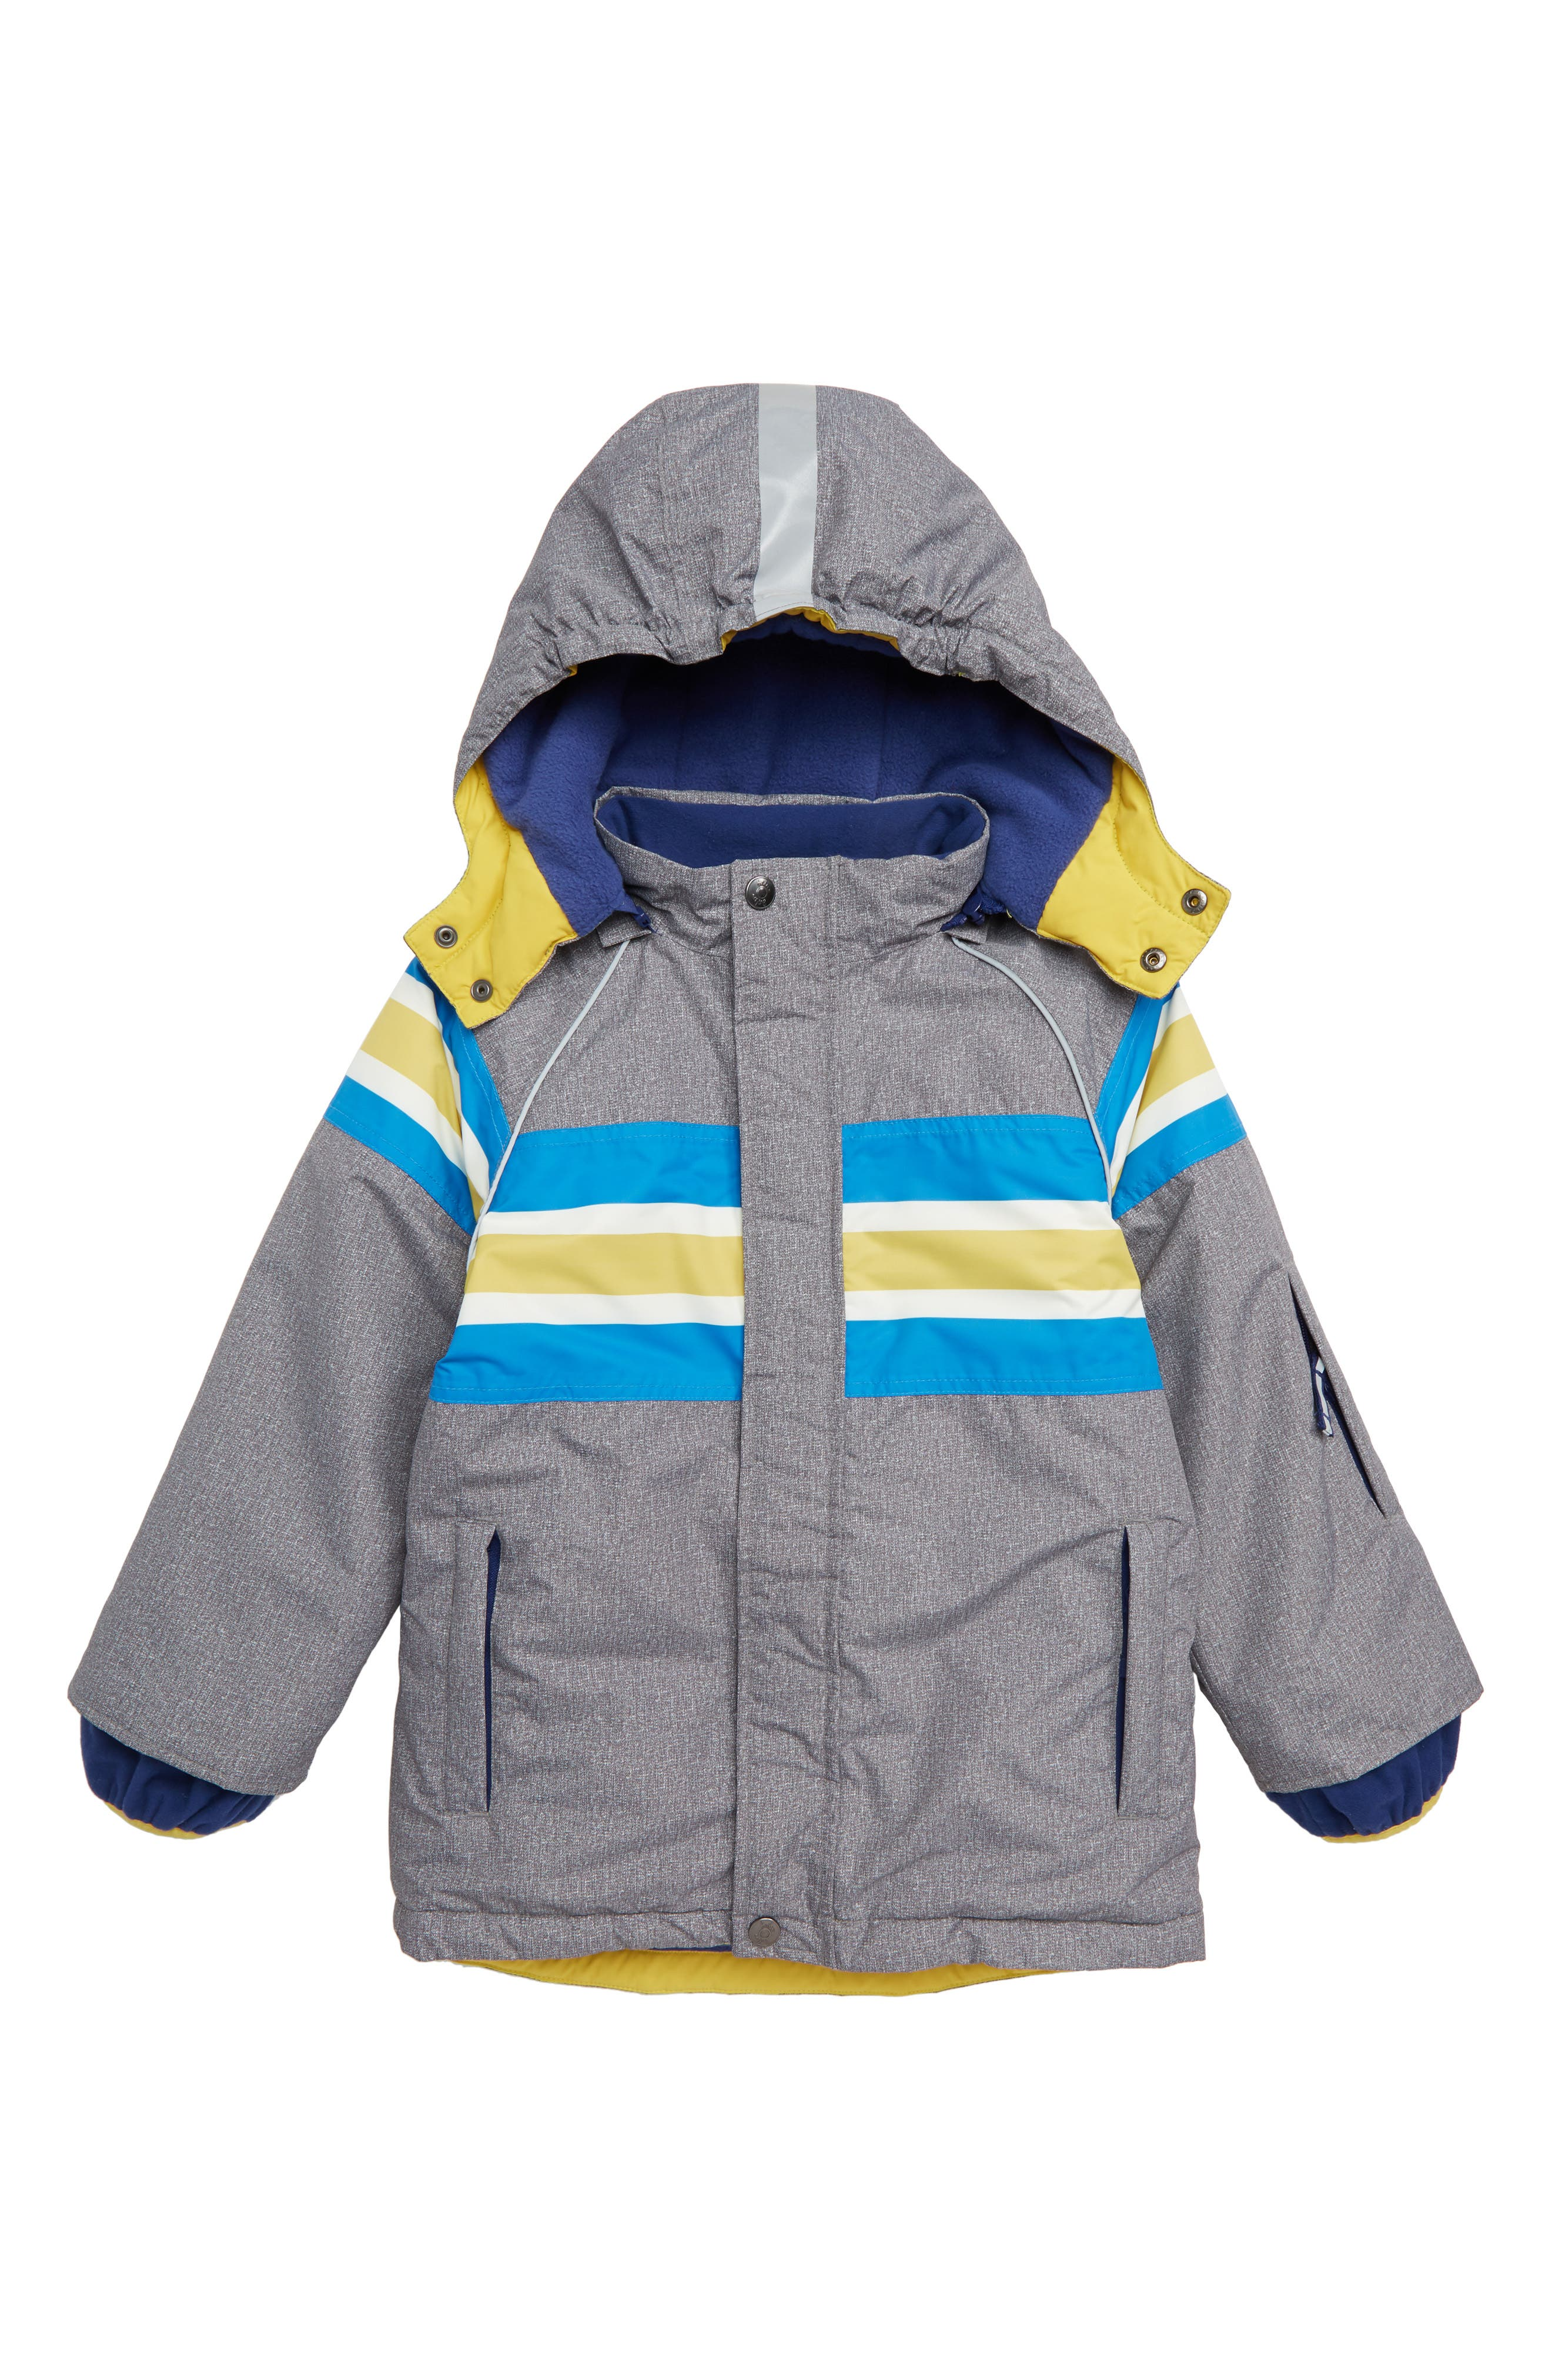 All Weather Waterproof Jacket,                             Main thumbnail 1, color,                             GREY MARL